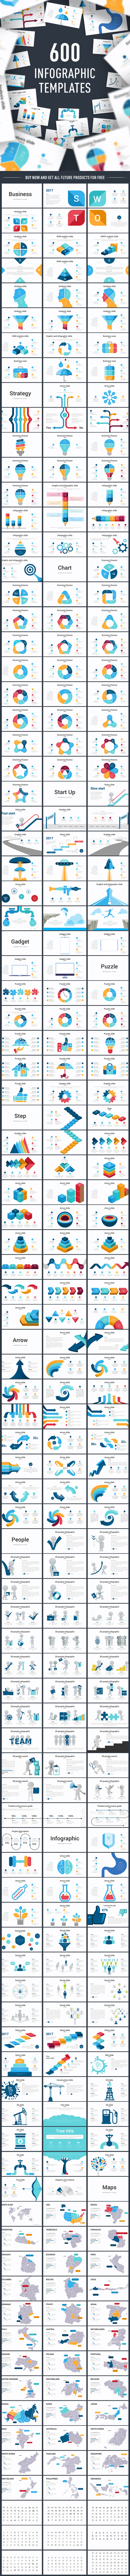 GraphicRiver Pack Infographic Slides 20438992